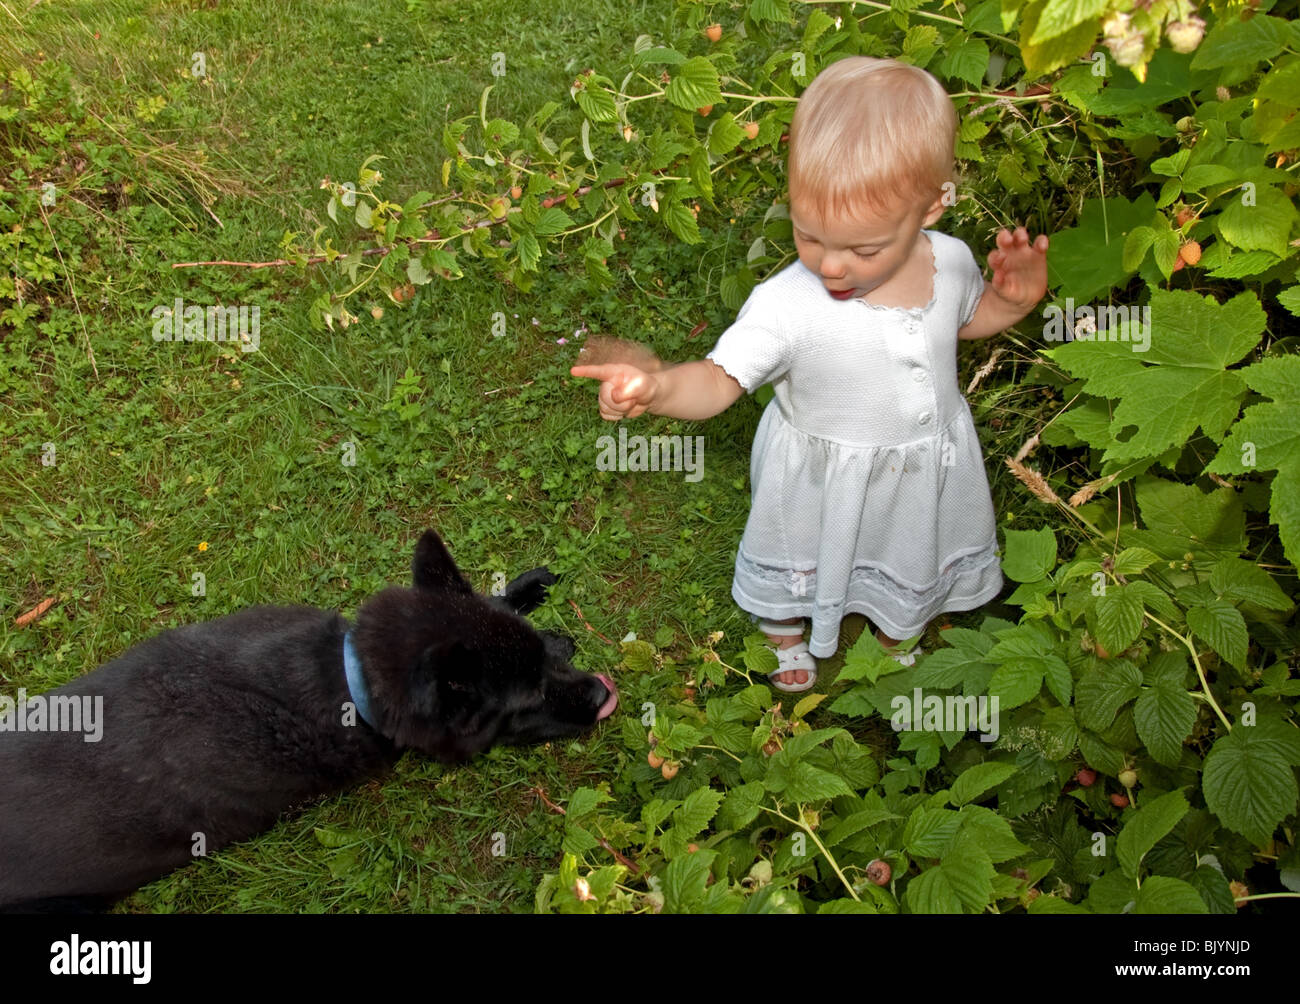 This cute 18 month old toddler girl is wearing a long white dress and  sandals while shaking a finger and scolding a pet dog. 012f225347a6